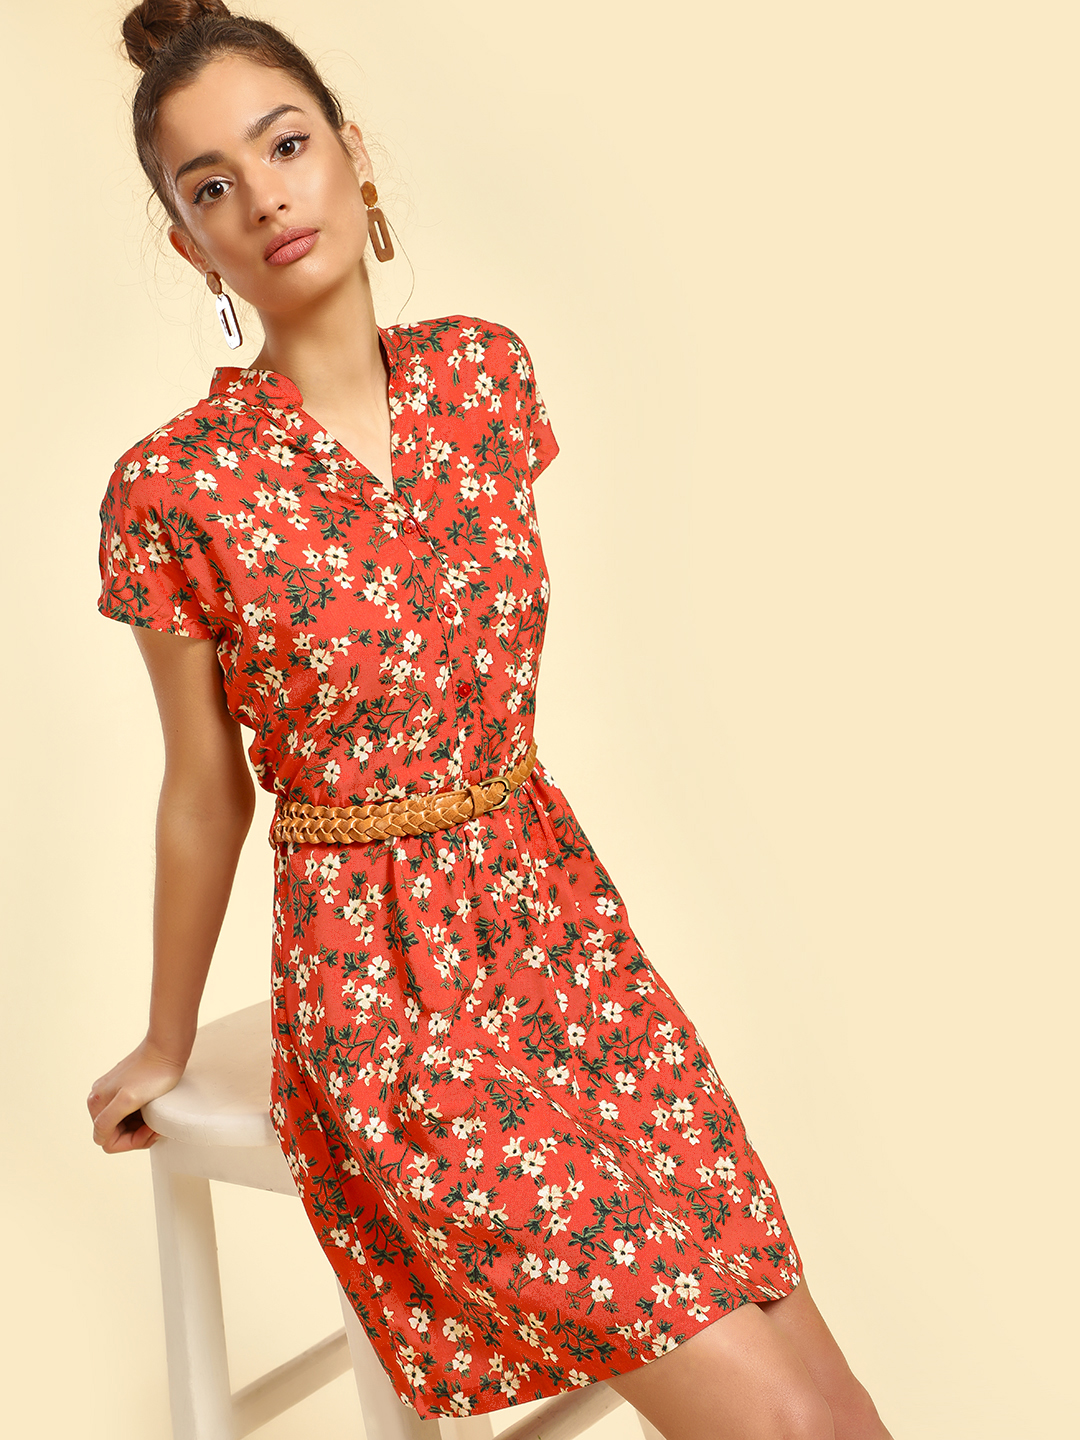 Miaminx Red Floral Print Shift Dress 1